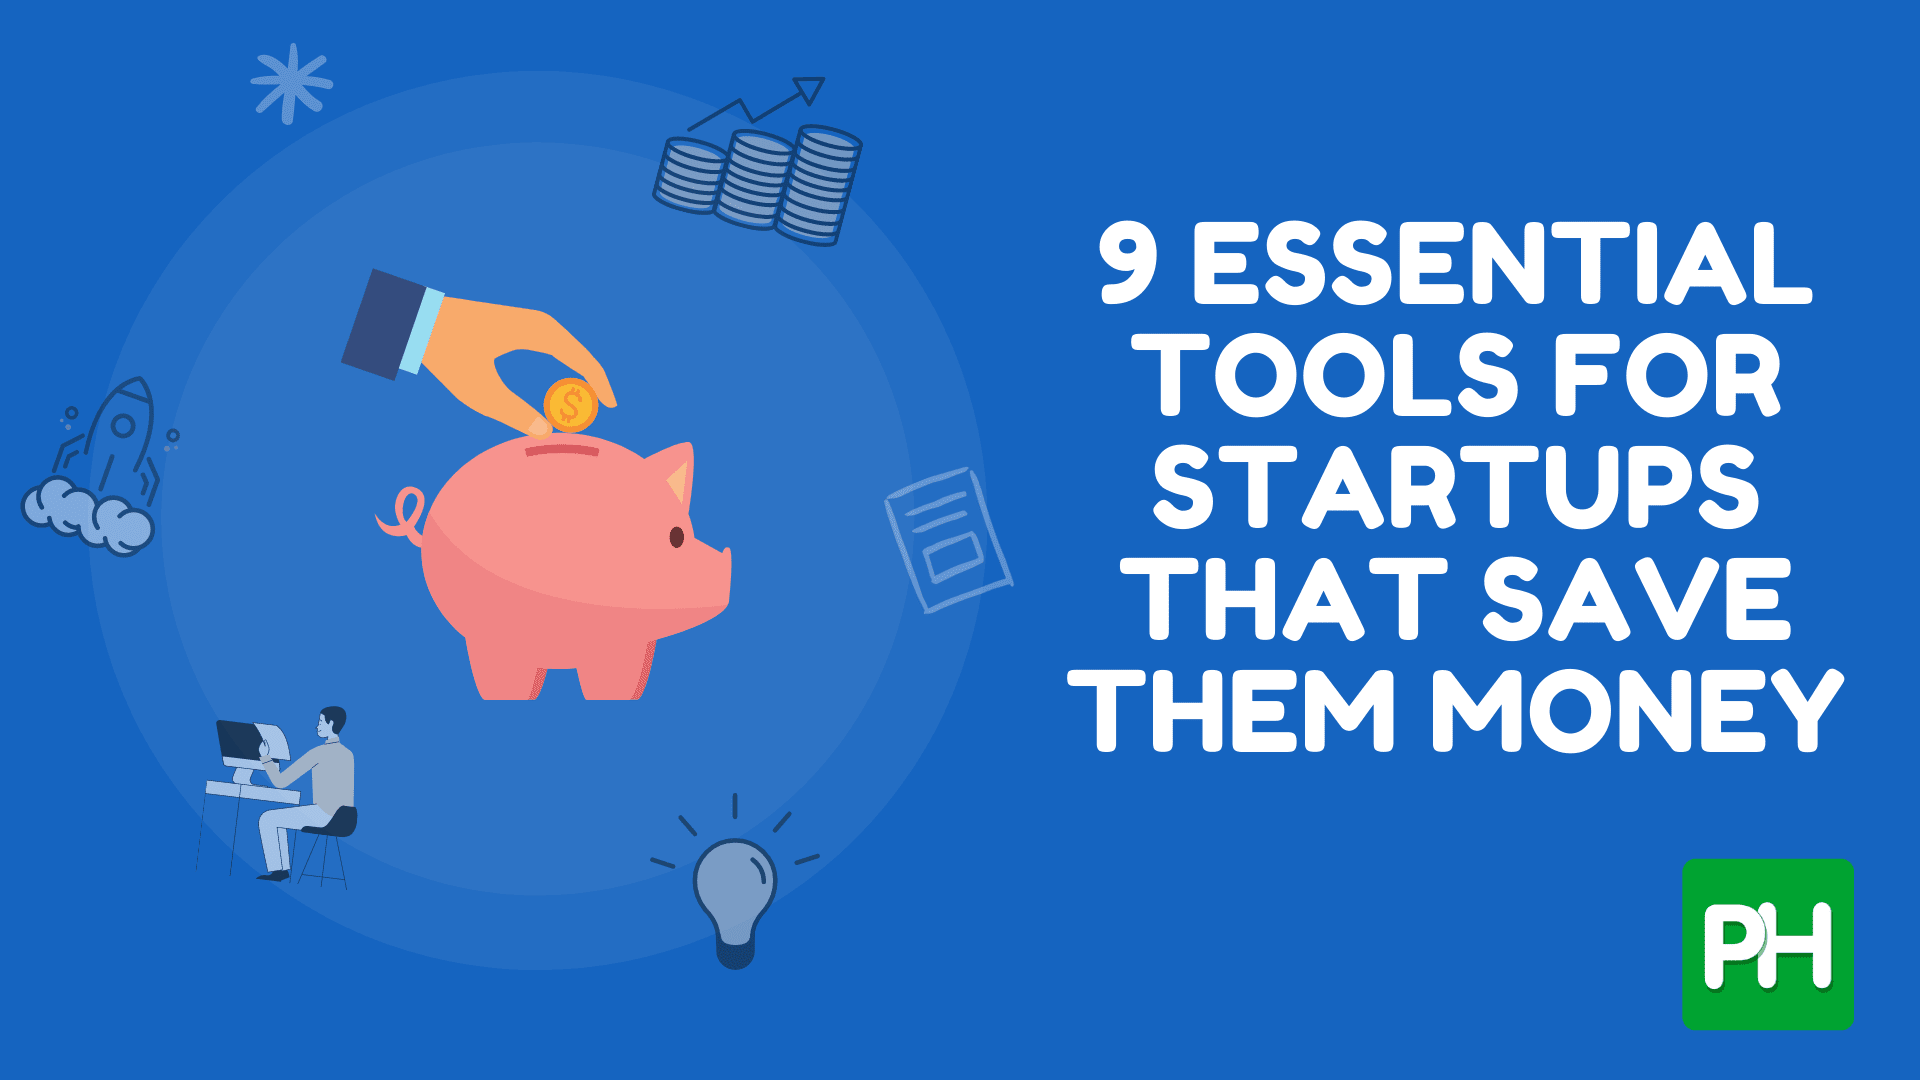 9 Paid Software Tools That Actually Save Money for Startups